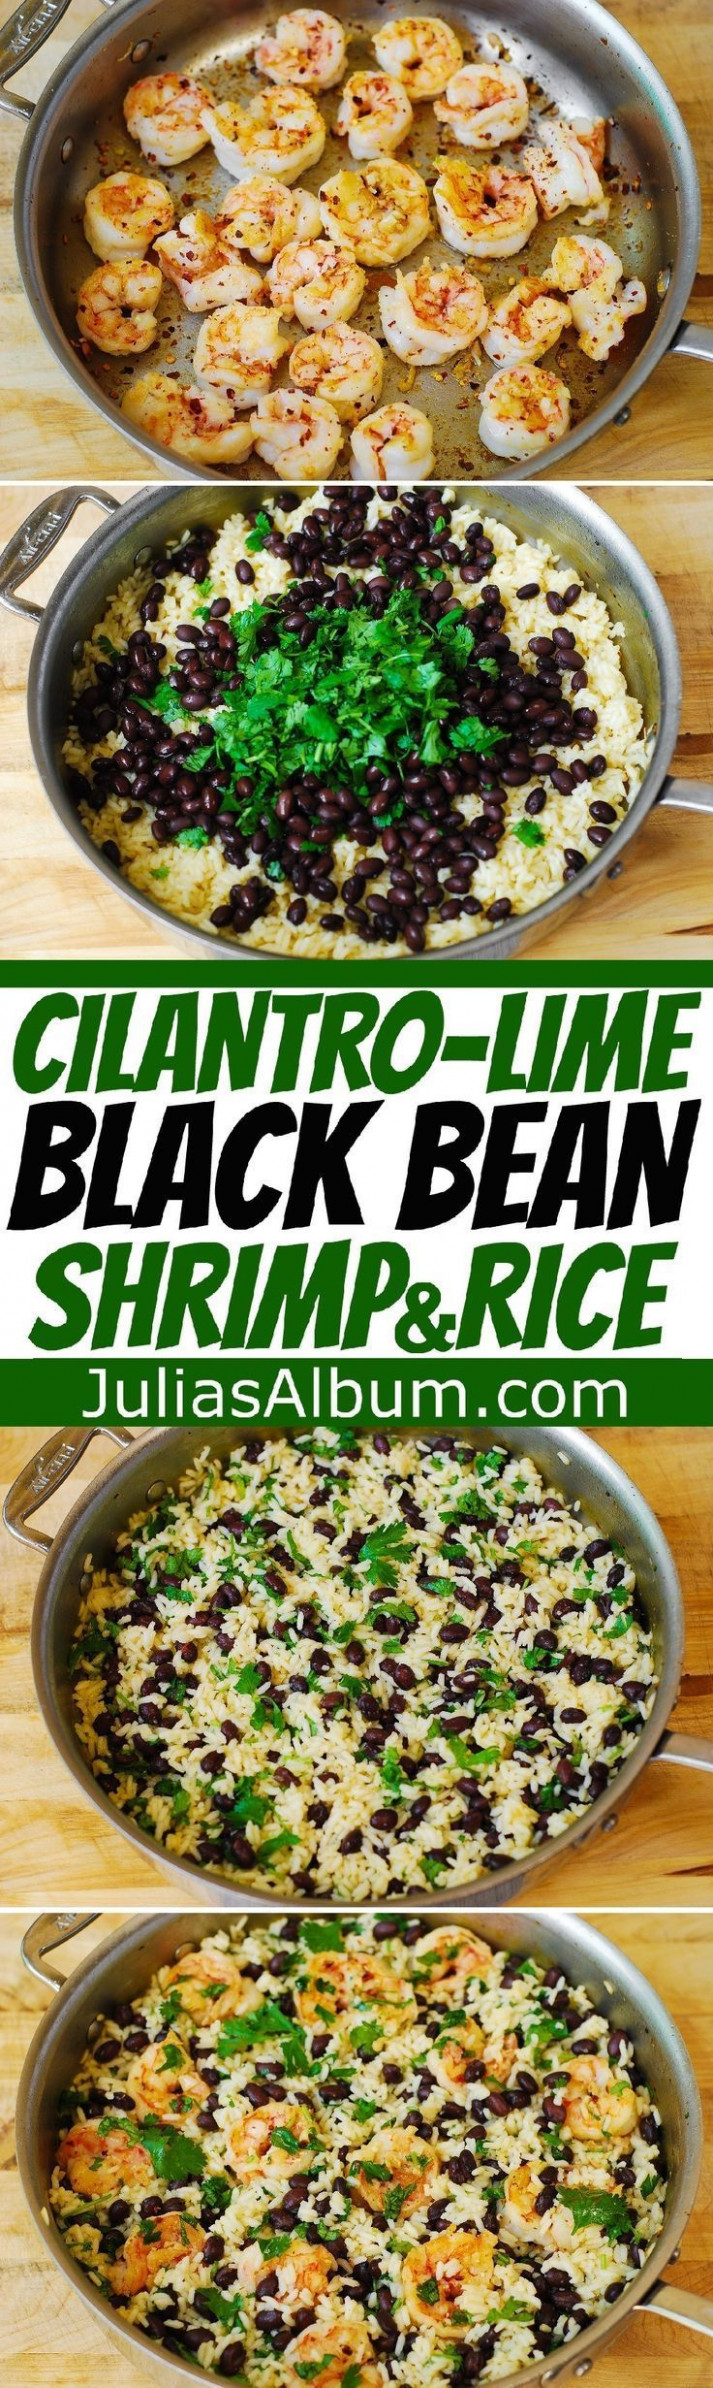 Cilantro-Lime Black Bean Shrimp and Rice - healthy, gluten ..